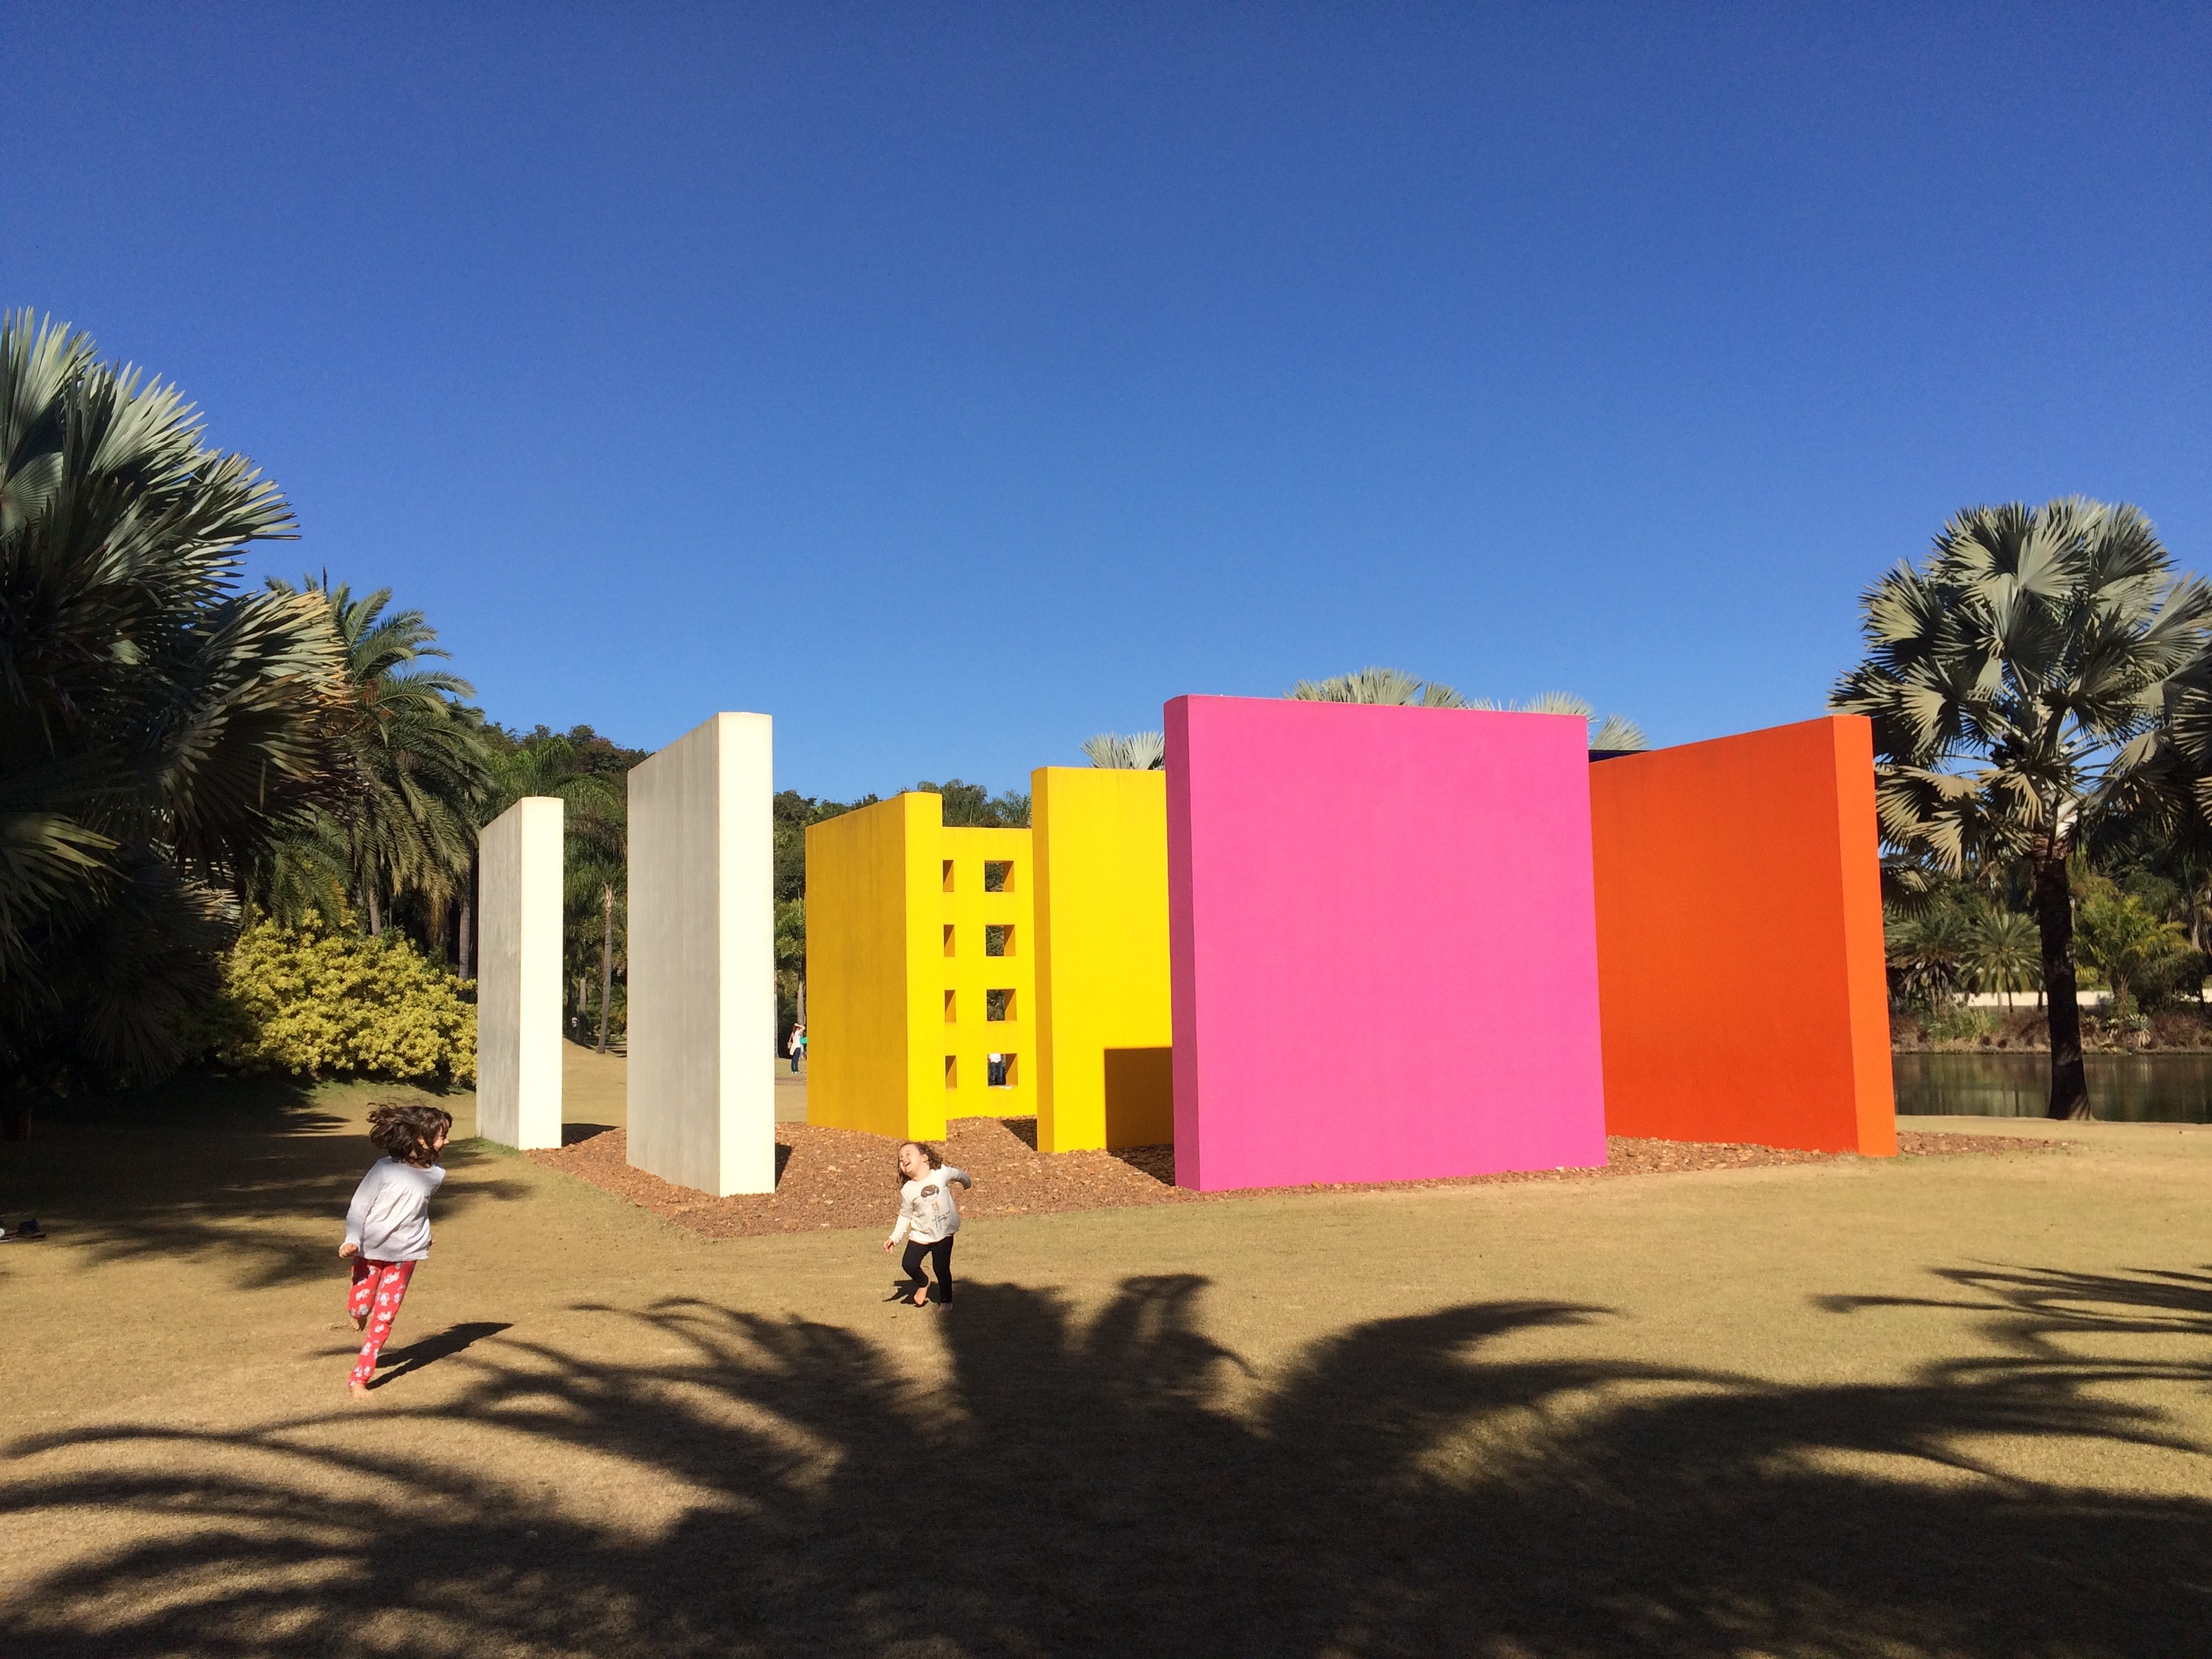 As meninas interagindo com a Penetrável Magic Square, de Hélio Oiticica